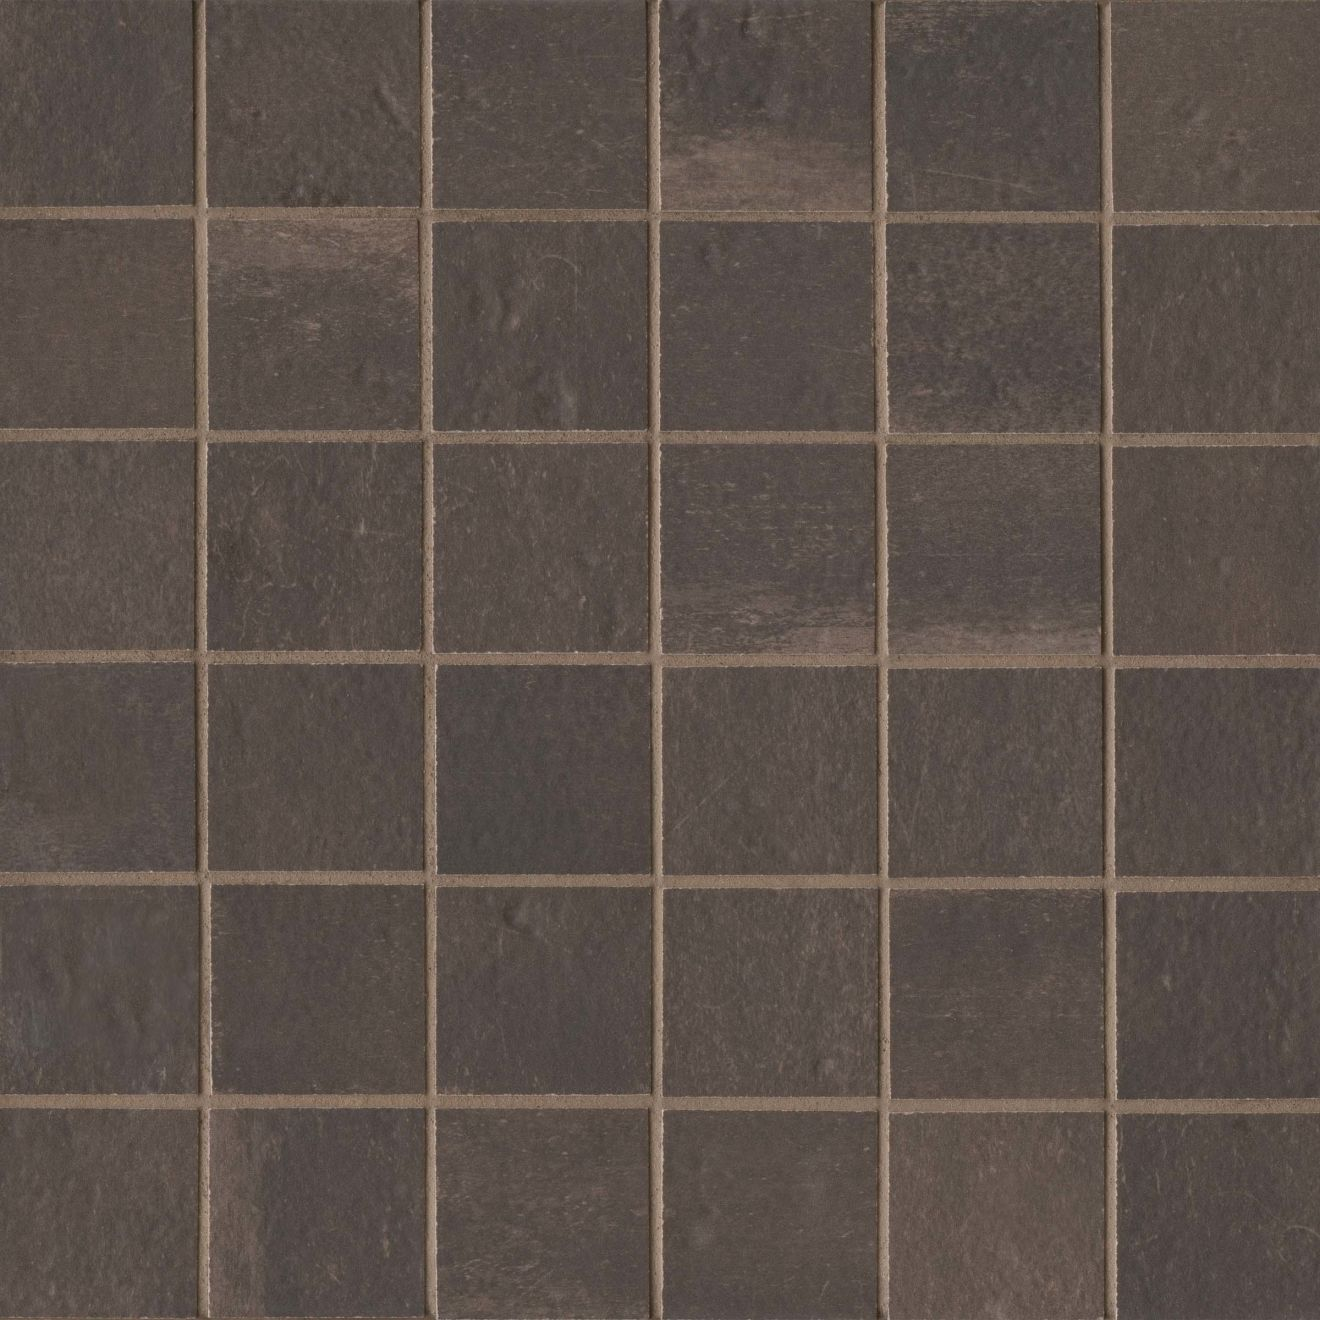 """Palazzo 2"""" x 2"""" Floor & Wall Mosaic in Antique Cotto"""